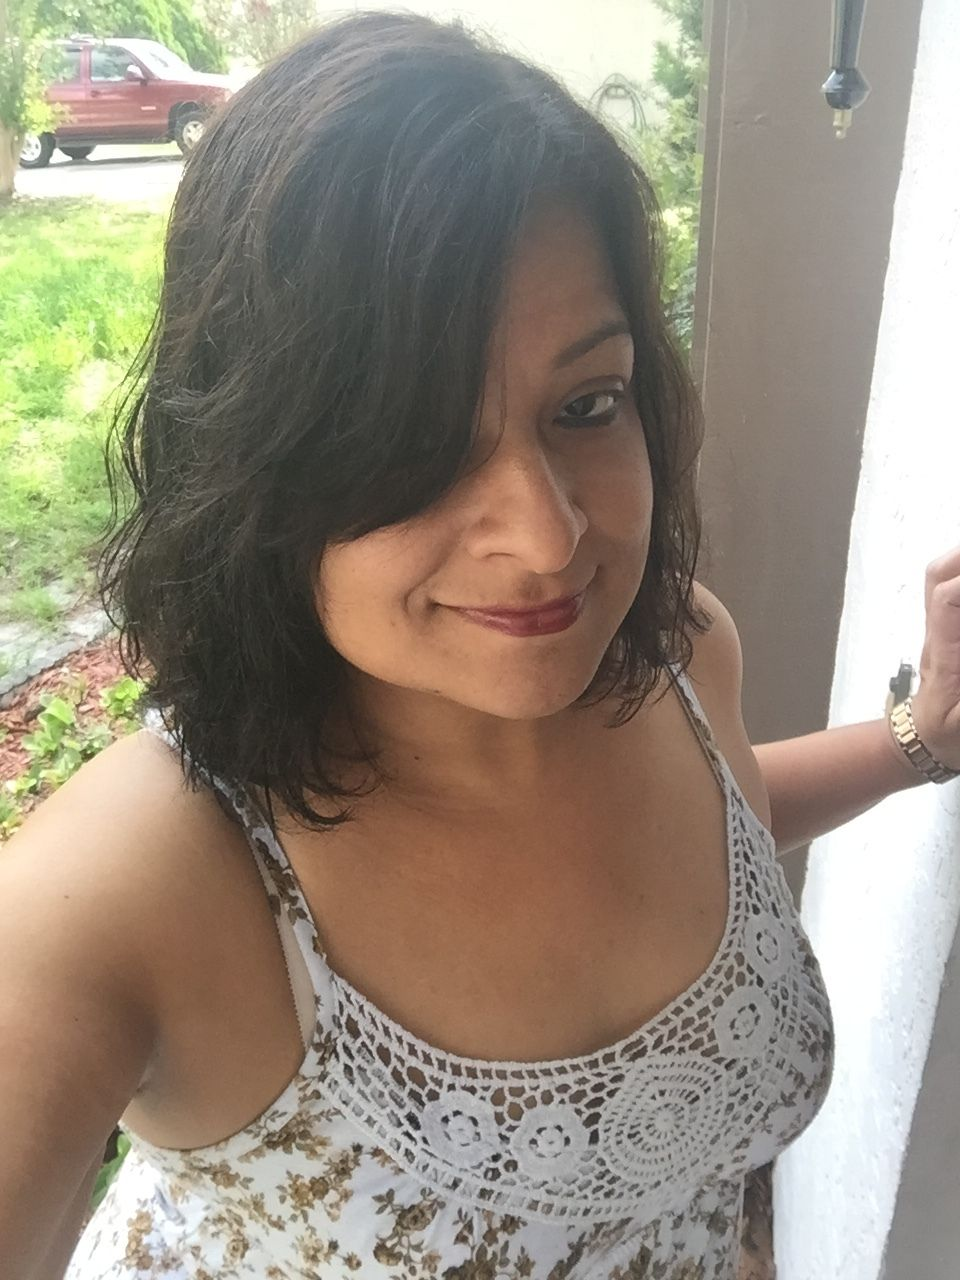 smyrna buddhist single women Search for local single christian women in murfreesboro online dating brings  singles together who may never otherwise meet it's a big world and the.